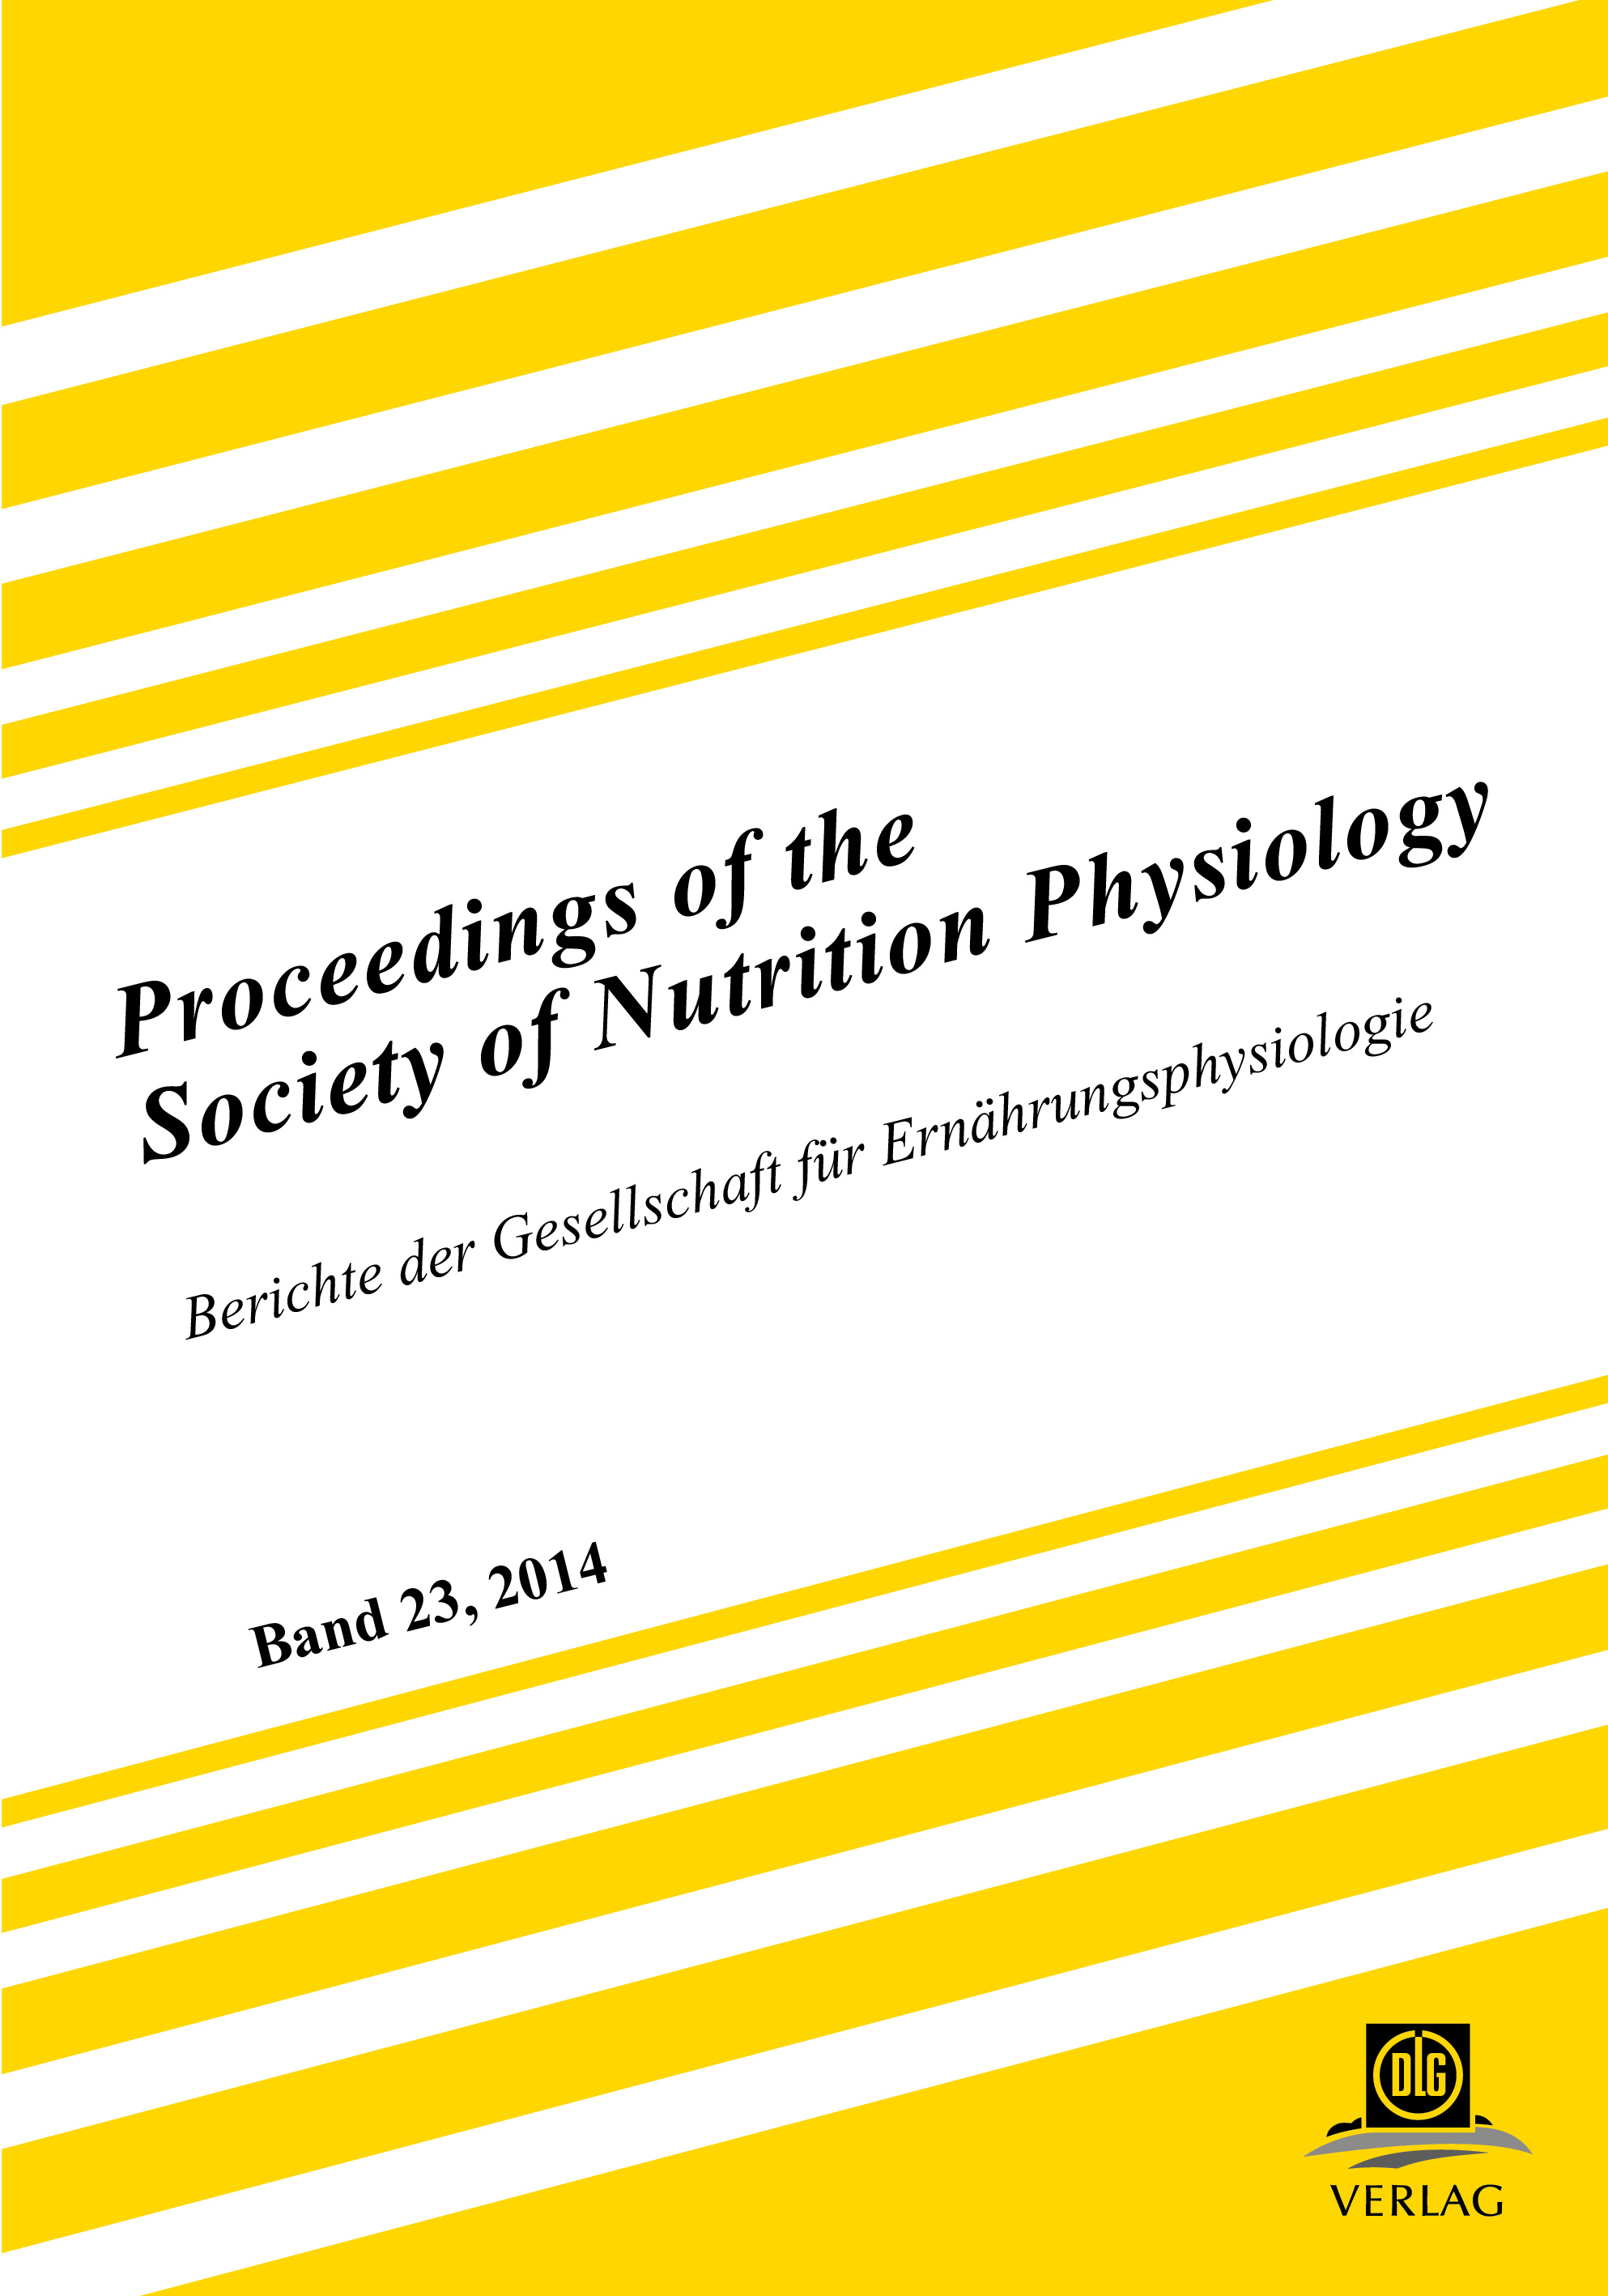 Proceedings of the Society of Nutrition Physiology Band 23: Berichte der Ge ...